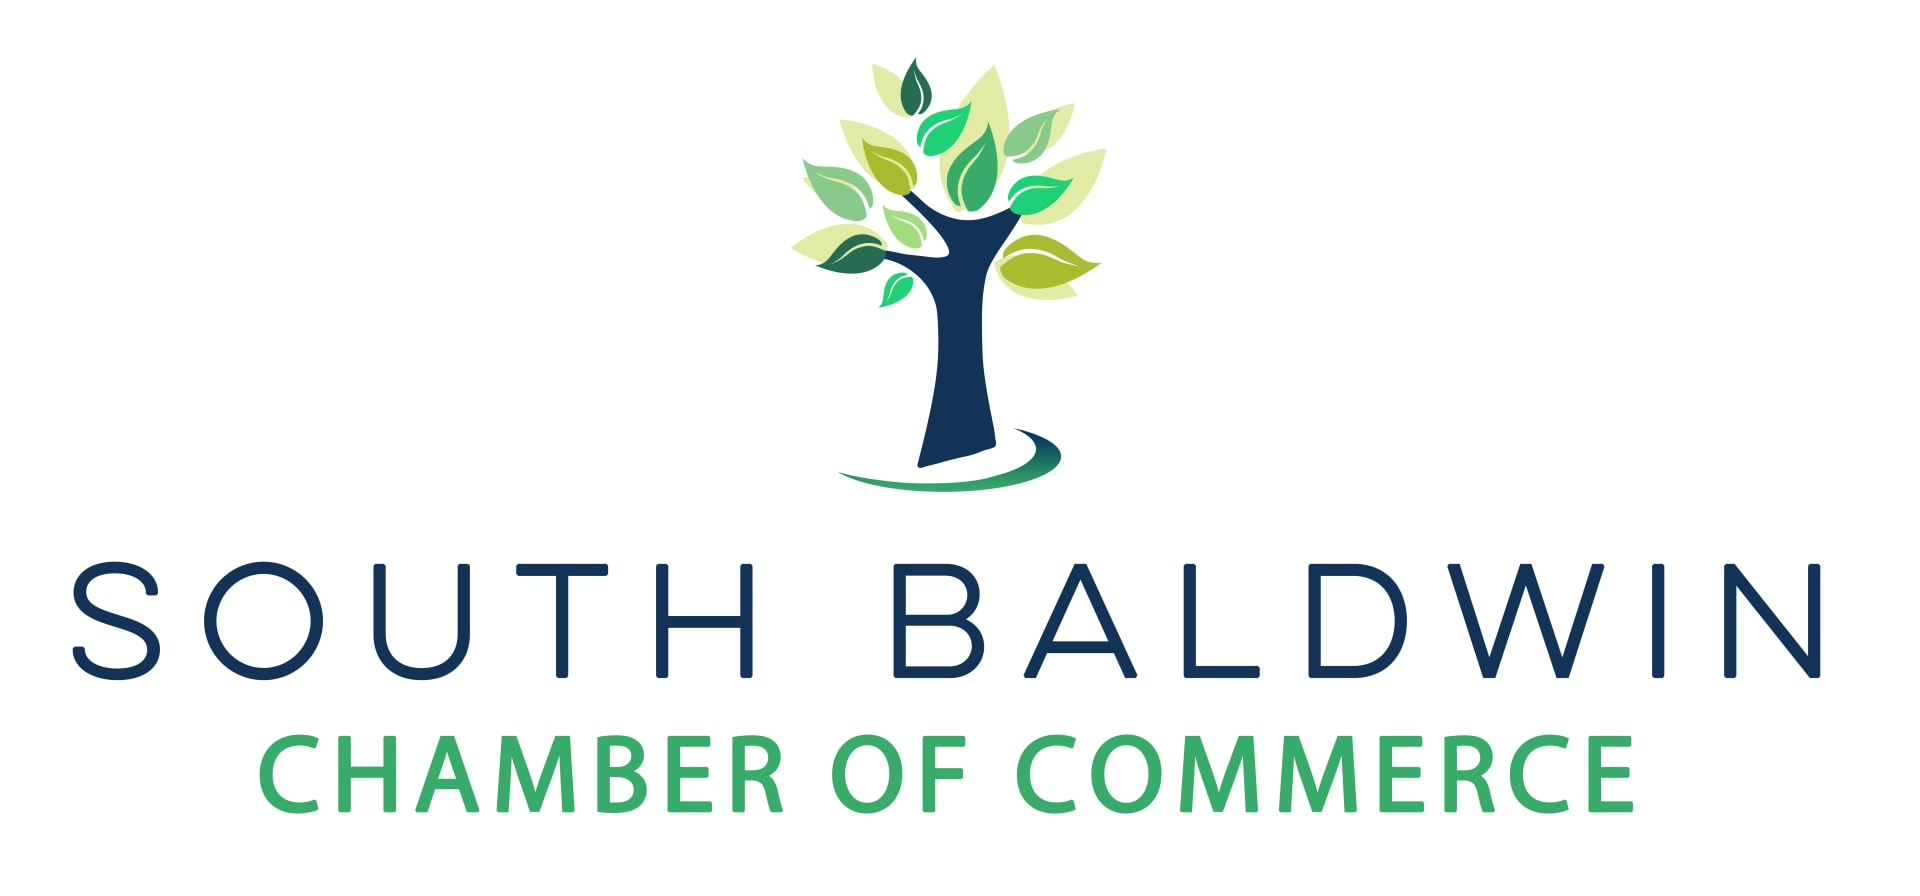 South Baldwin Chamber of Commerce Logo